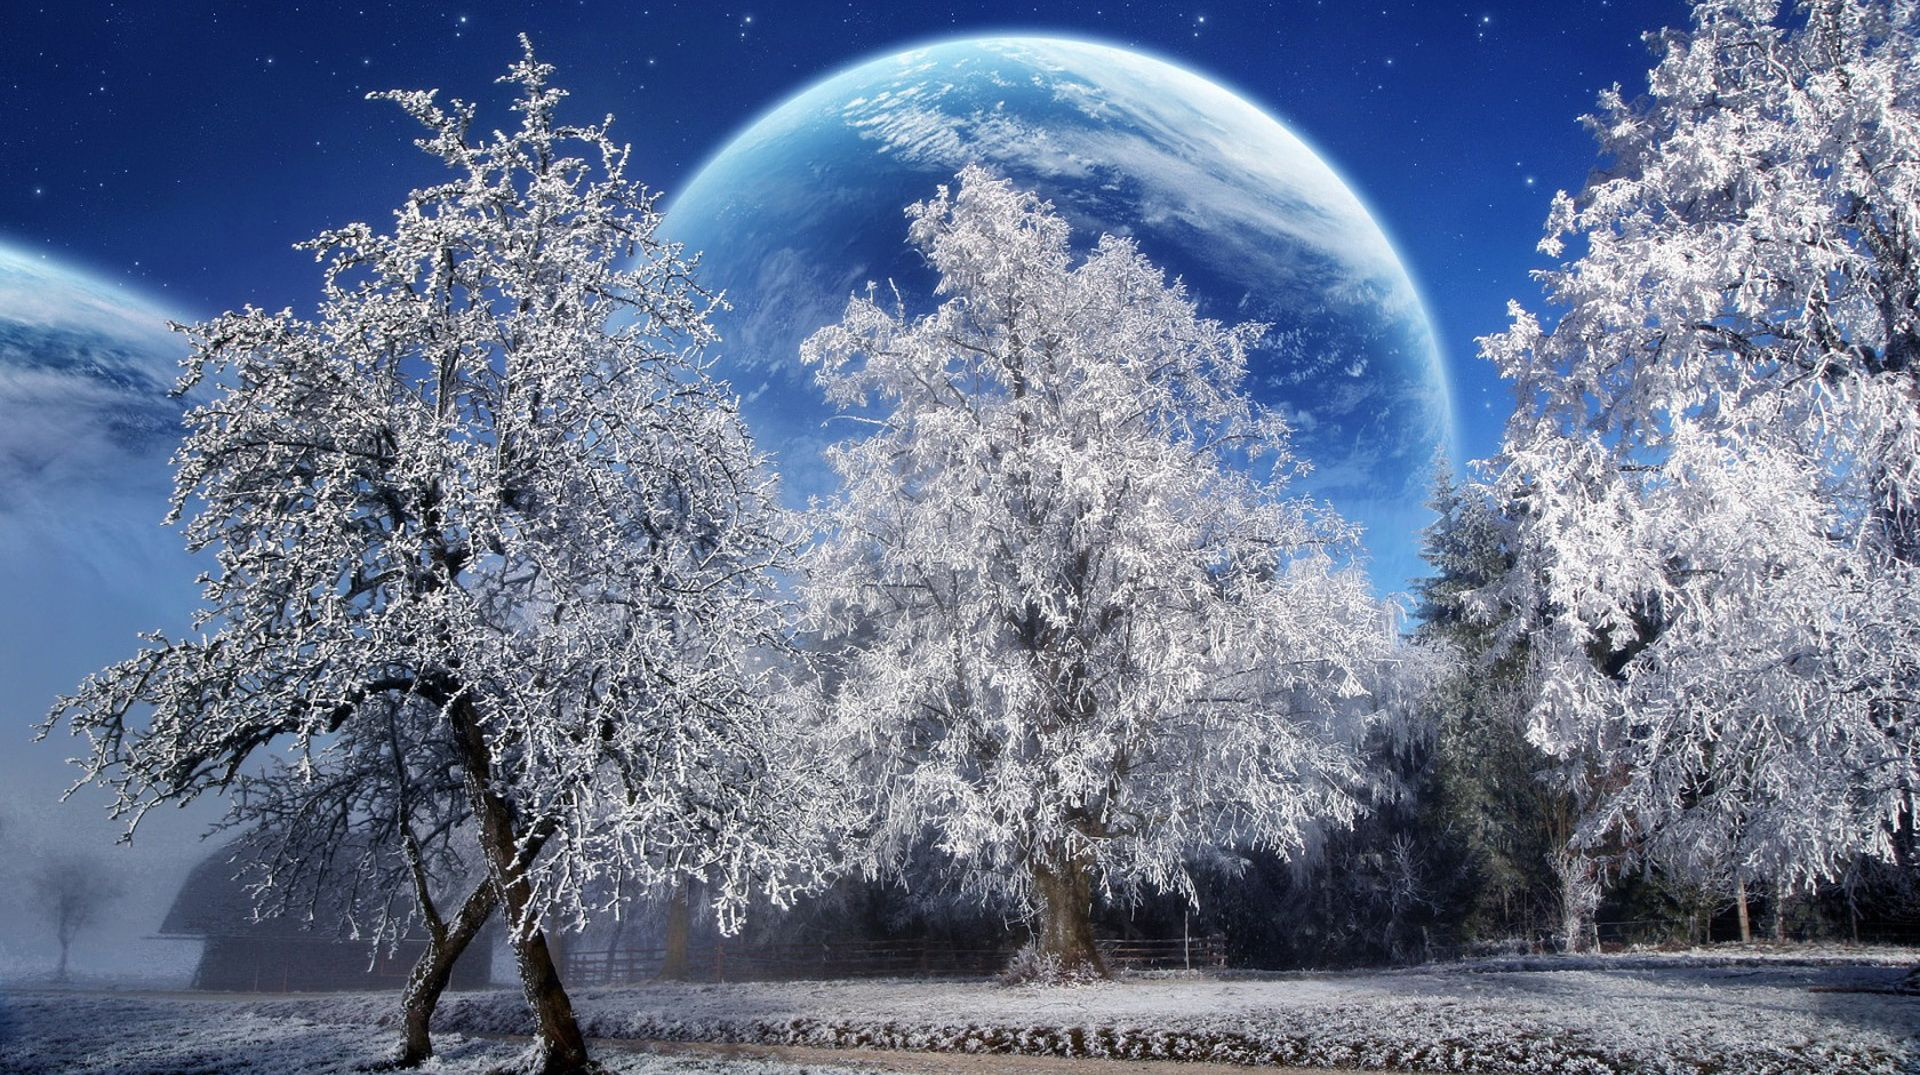 Snow Nature Hd For Desktop Background 13 Hd Wallpapers Aduphoto Winter Scenery Winter Pictures Winter Landscape